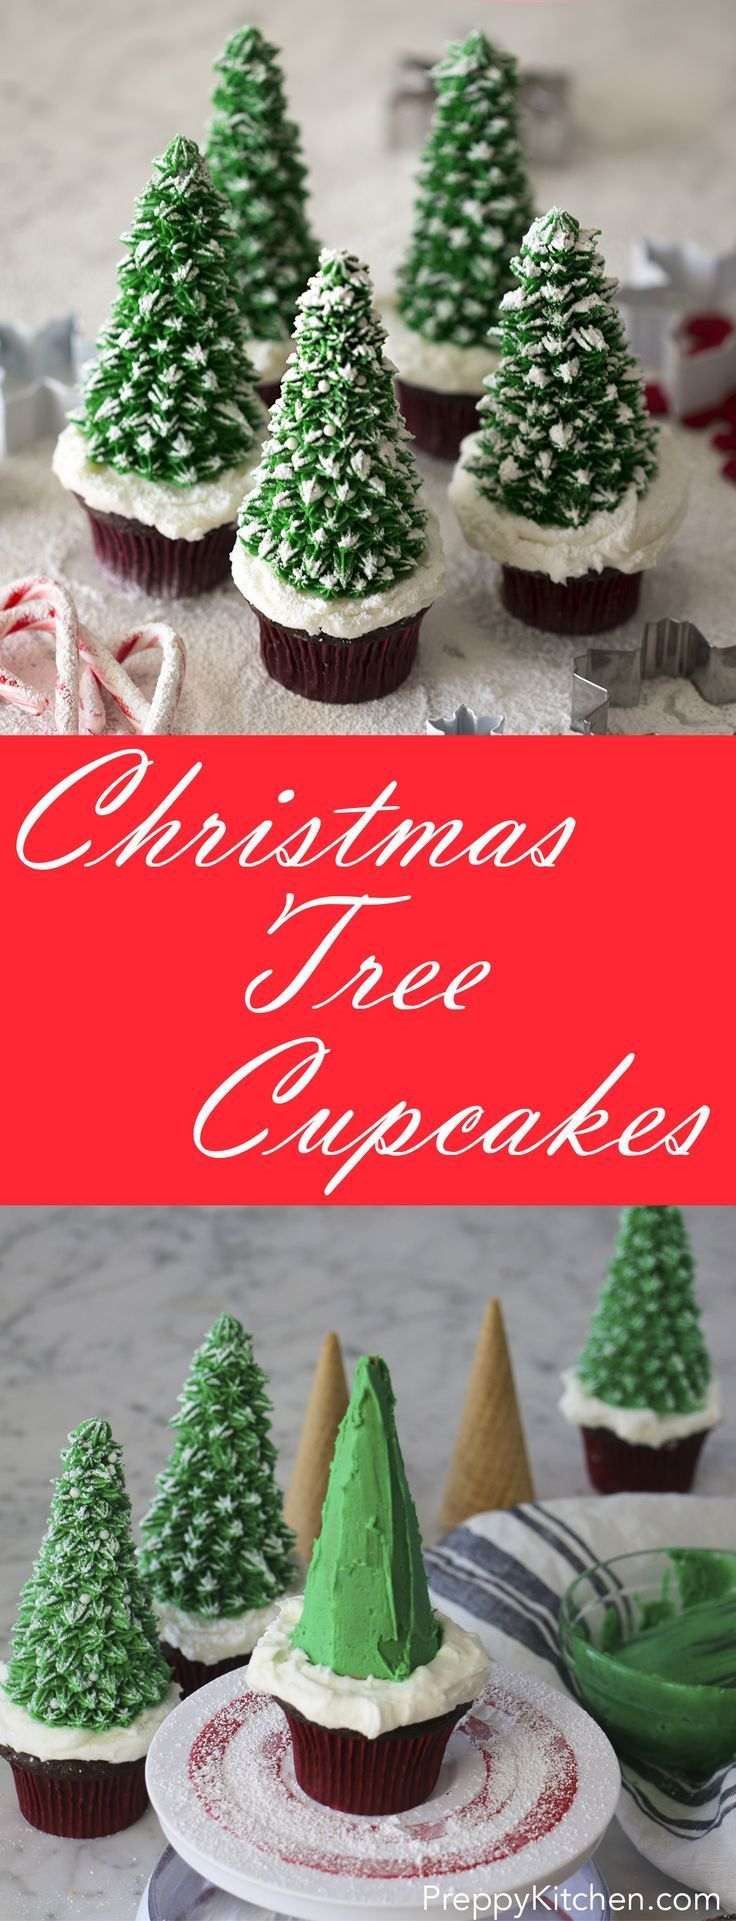 Easy to make holiday cupcakes that look like snow-covered Christmas trees! via /preppykitchen/